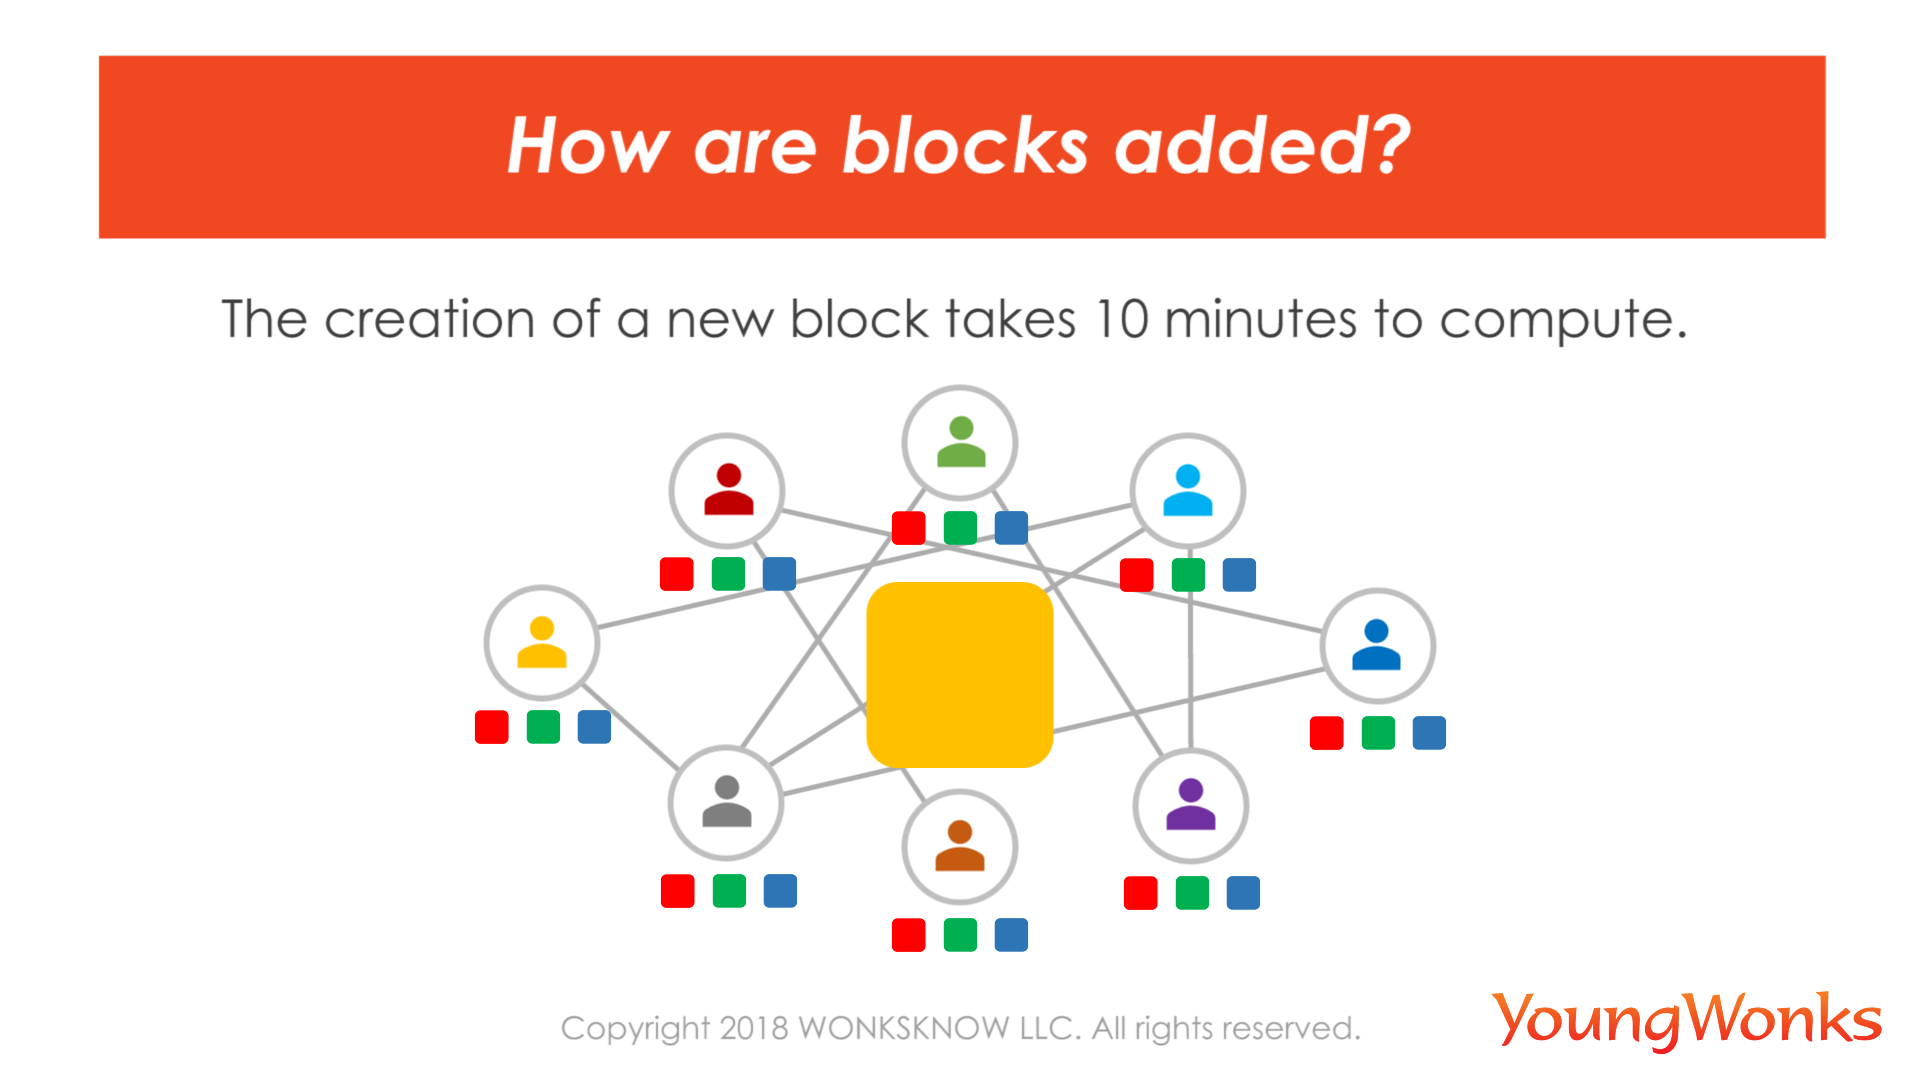 Block computing takes 10 mins